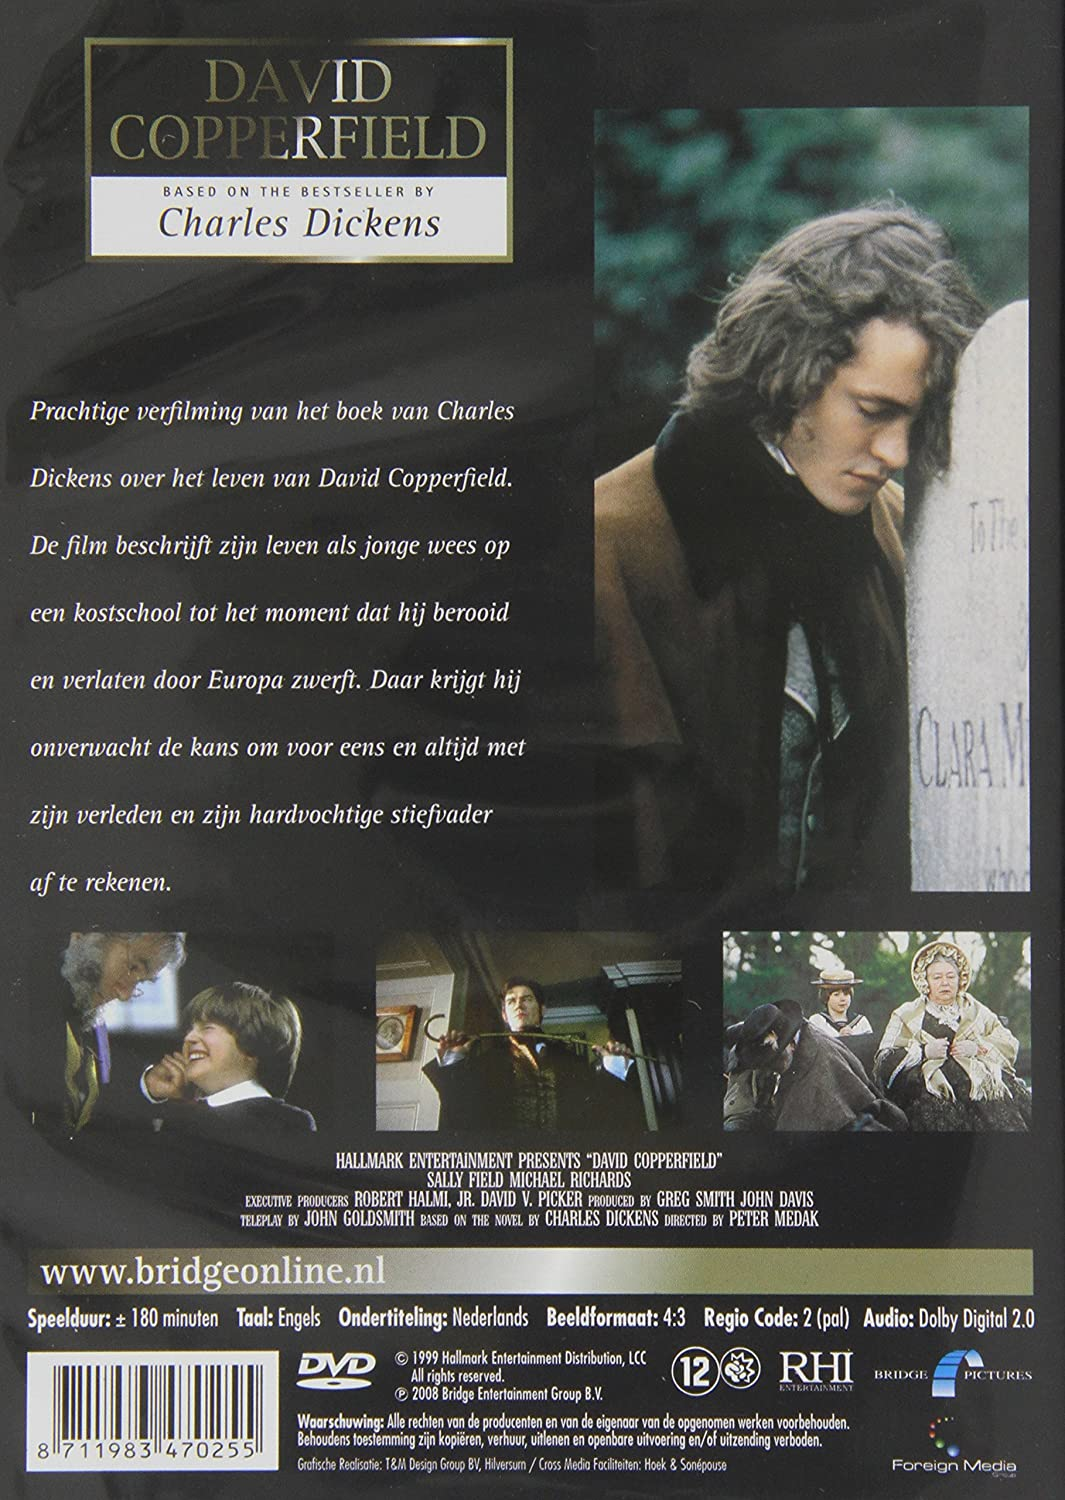 david copperfield 2000 dvd co uk eileen atkins david copperfield 2000 dvd co uk eileen atkins edward hardwicke freddie jones nigel davenport emily hamilton alec mccowen